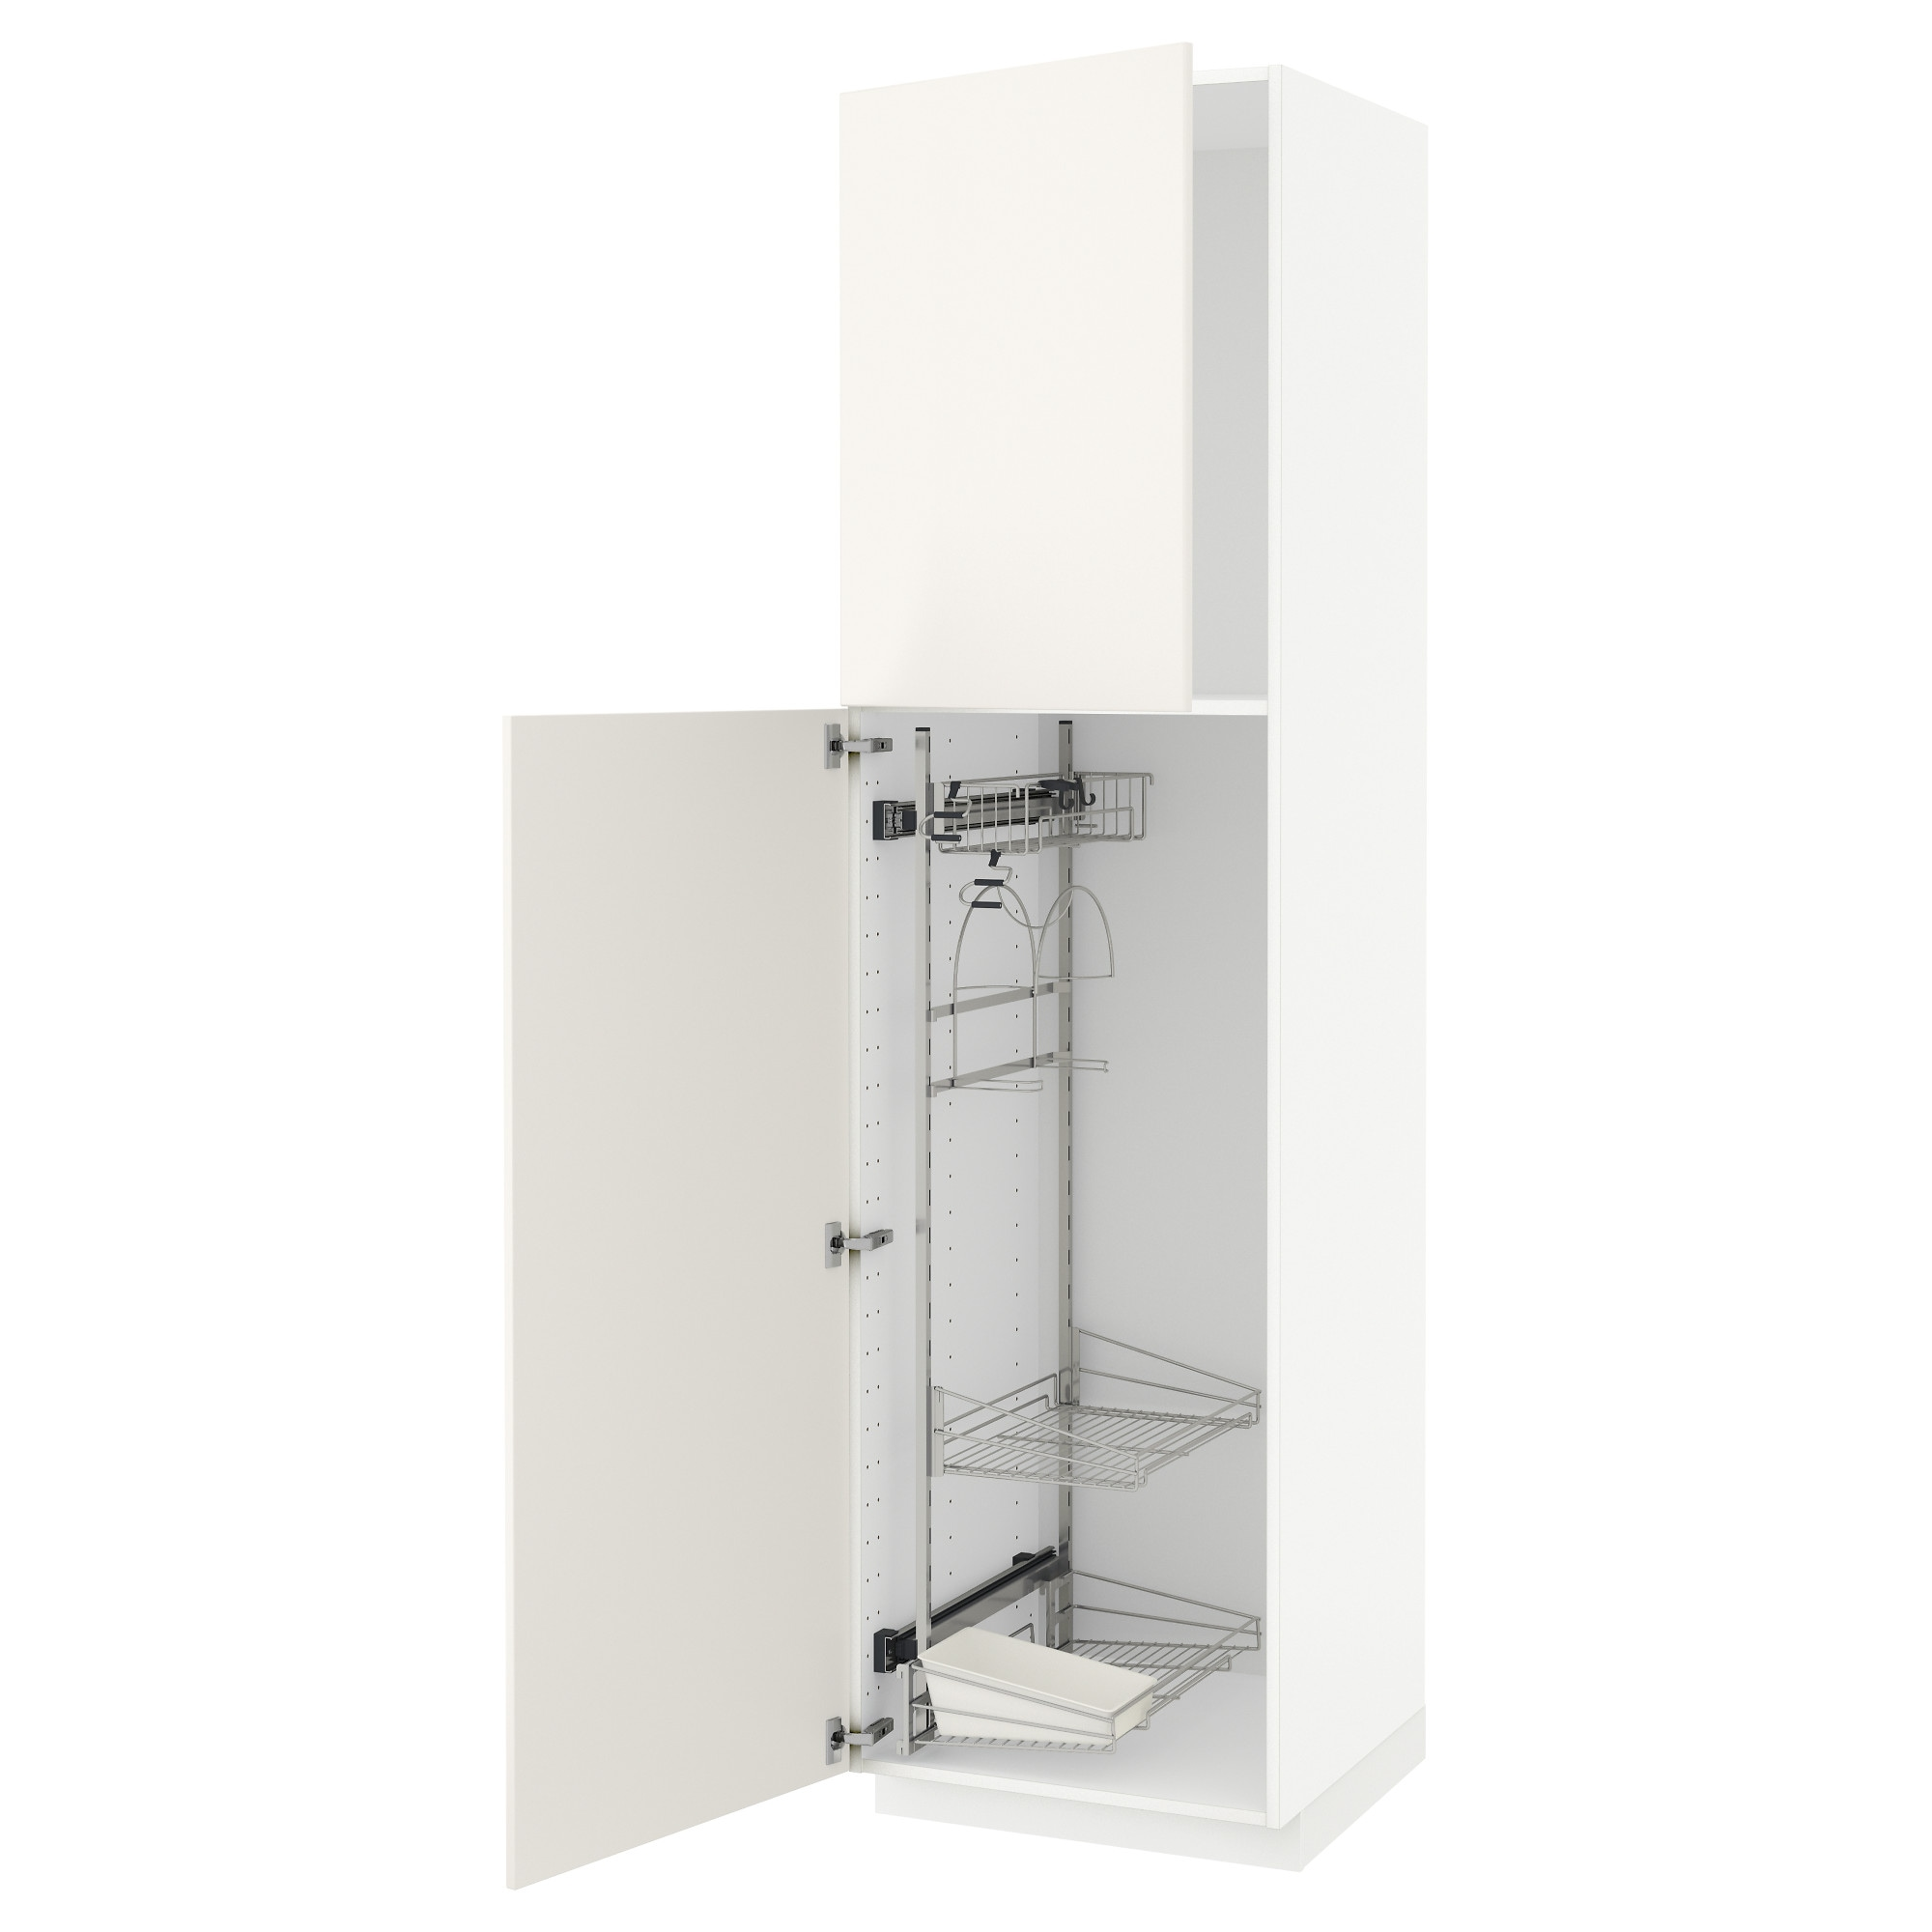 Kitchen cabinets 50cm depth - Metod High Cabinet With Cleaning Interior White Veddinge White Width 60 0 Cm Depth